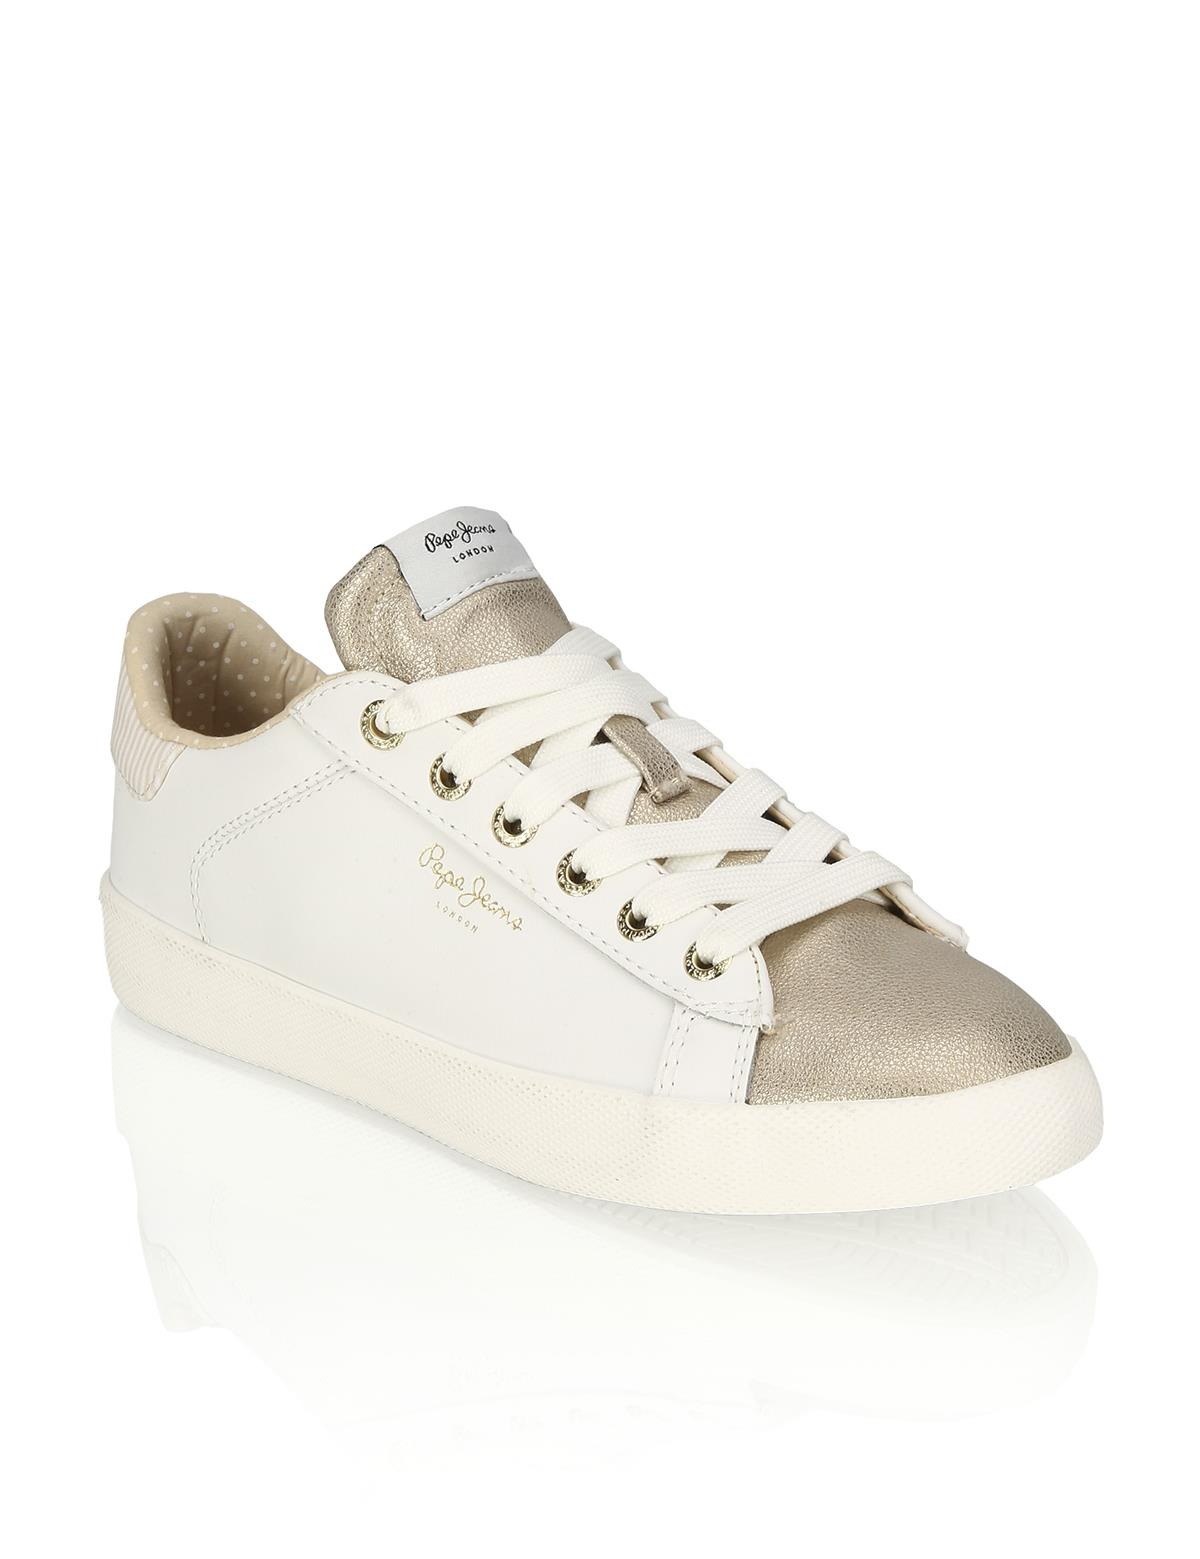 HUMANIC 89 Pepe Jeans Sneaker EUR 79,95 1241113215